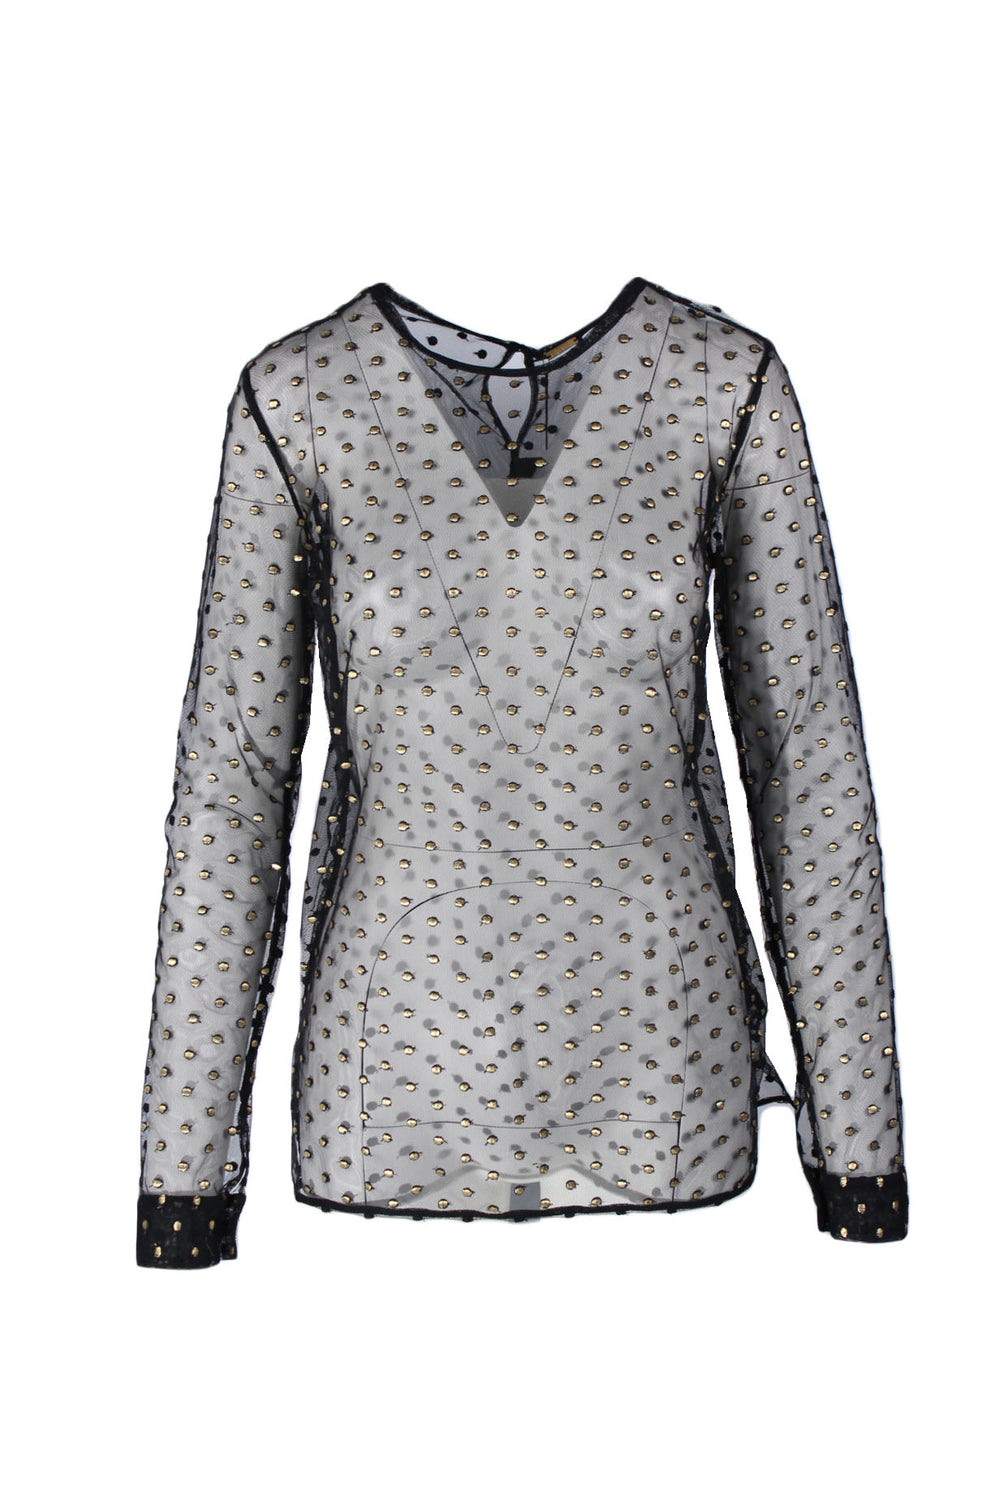 dodo bar or black long sleeve embellished sheer net top. features all-over gold dot embroidery and keyhole back detail. straight cut, buttoned cuffs, side slits. unlined.